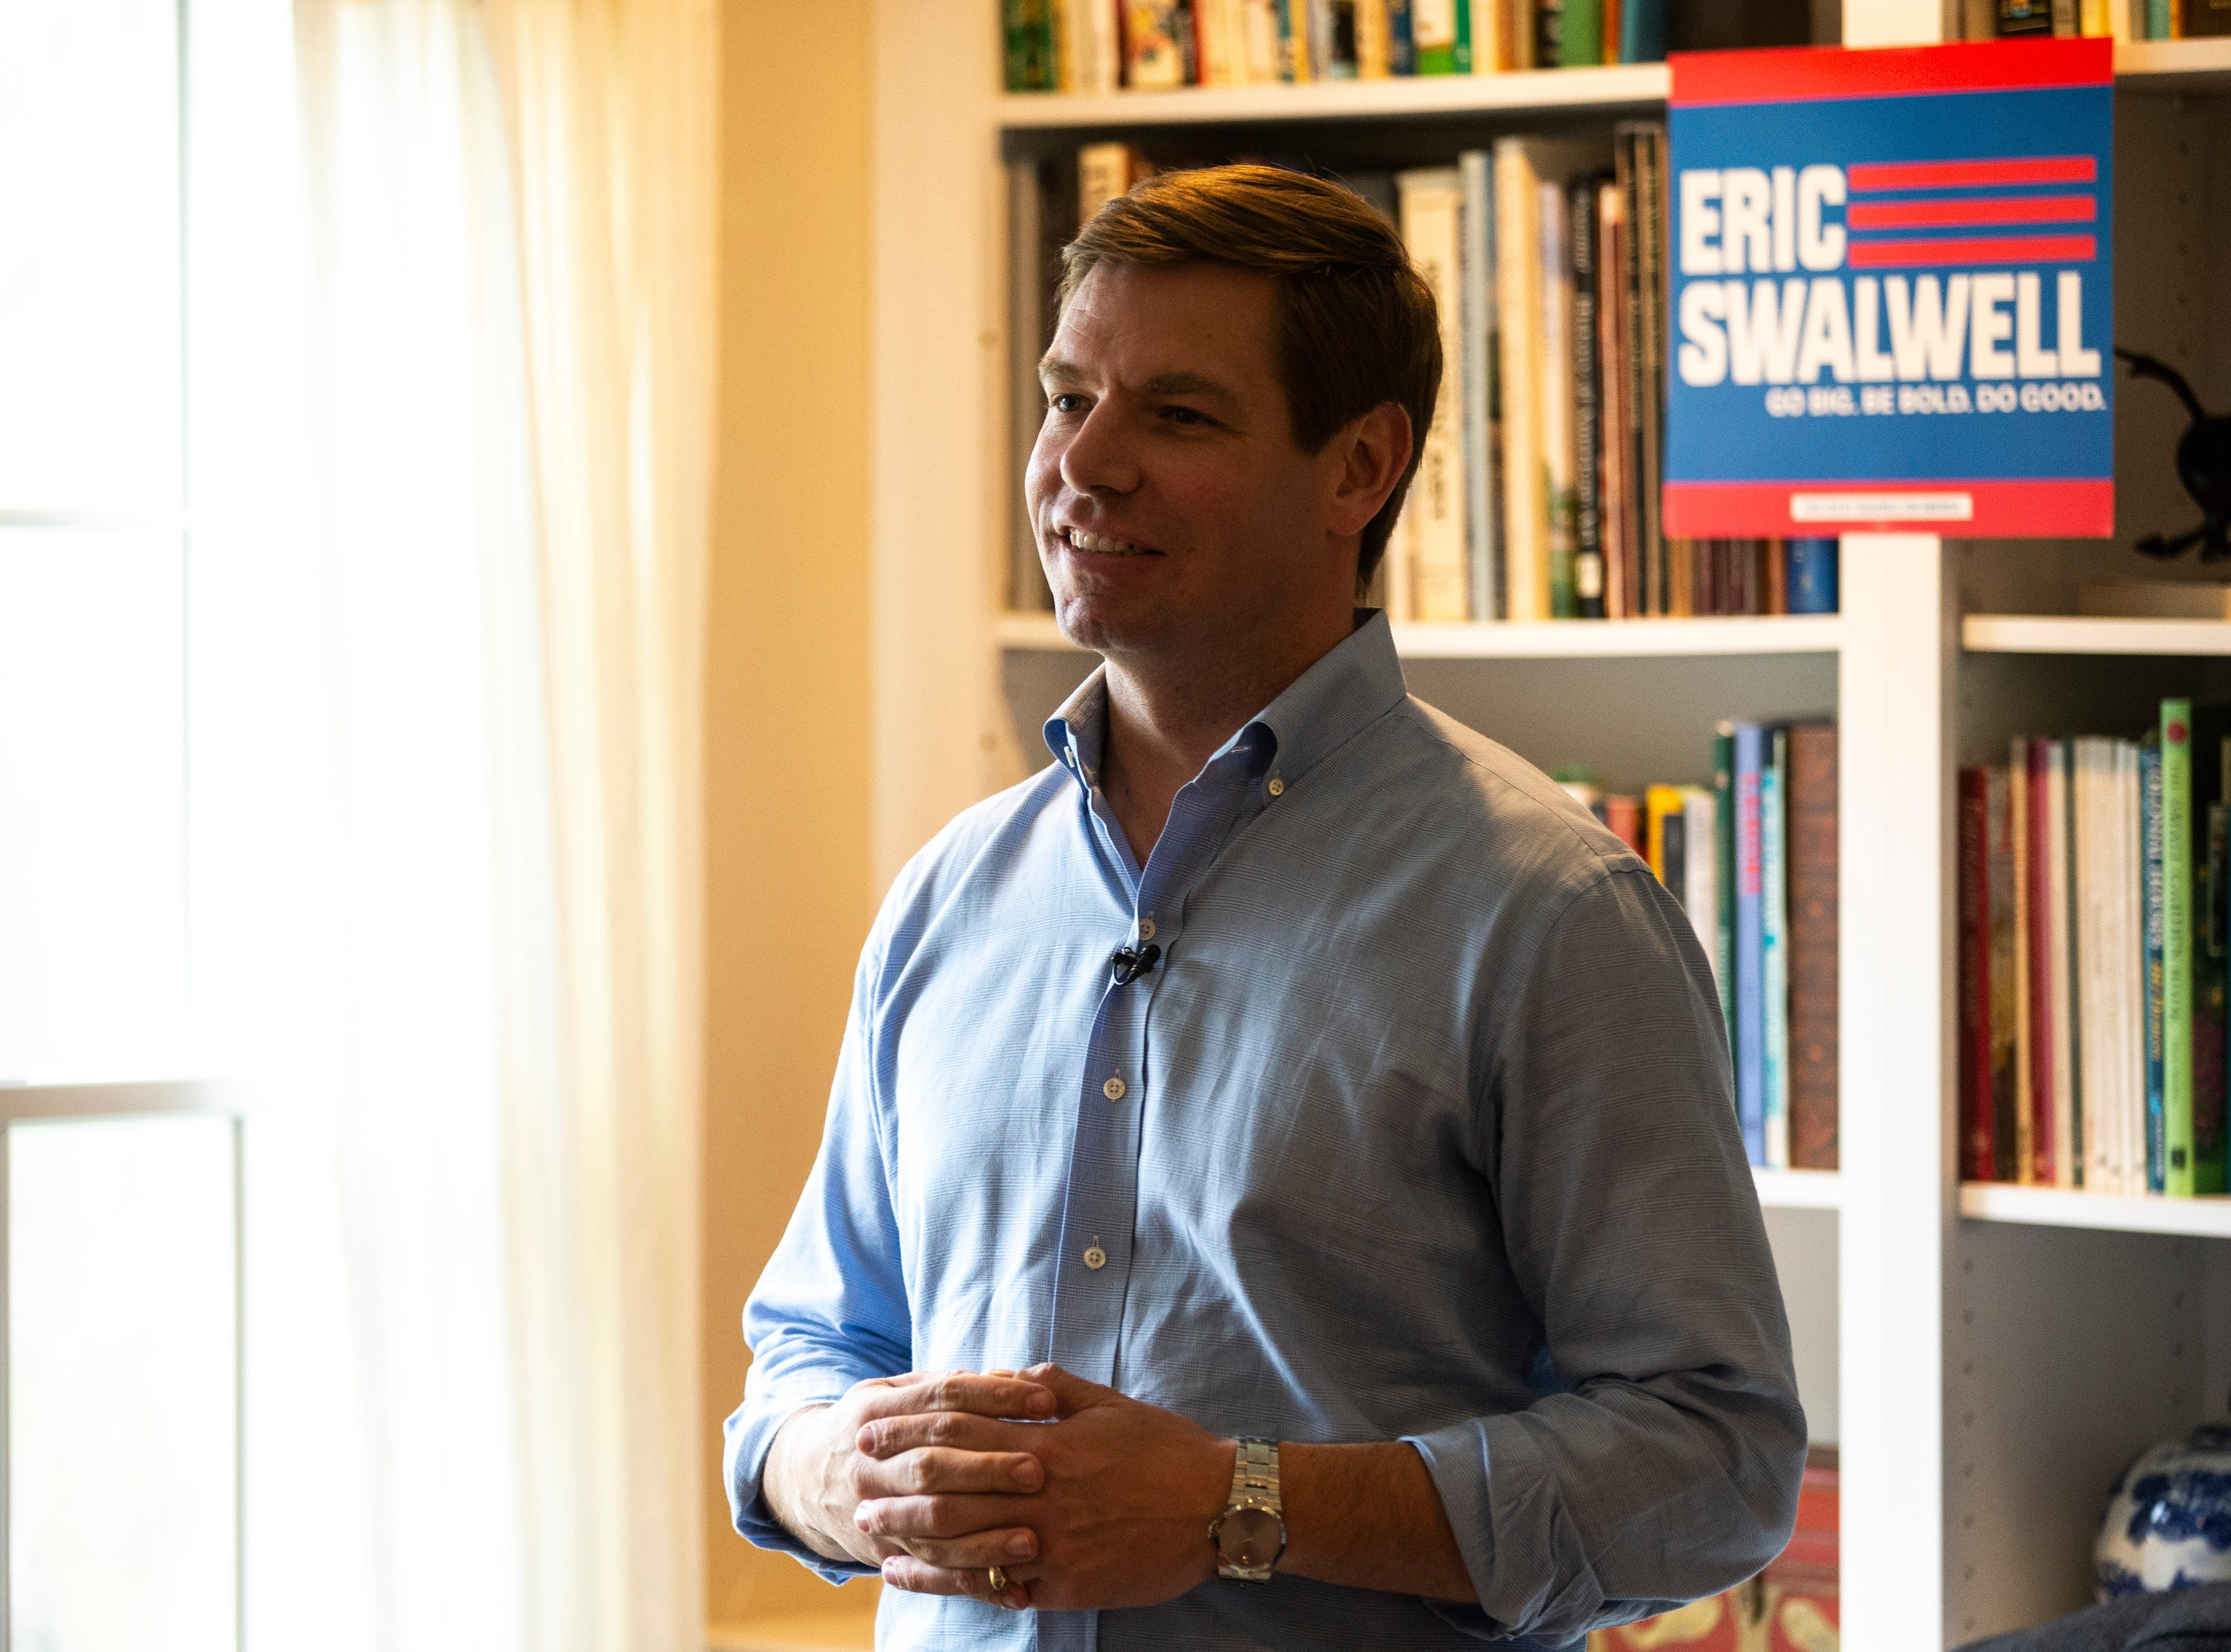 """U.S. Rep. Eric Swalwell, D-Calif., smiles while speaking to a group at a house party hosted by the """"Potluck Insurgency"""" group, Sunday, April 28, 2019, at a home in North Liberty, Iowa."""